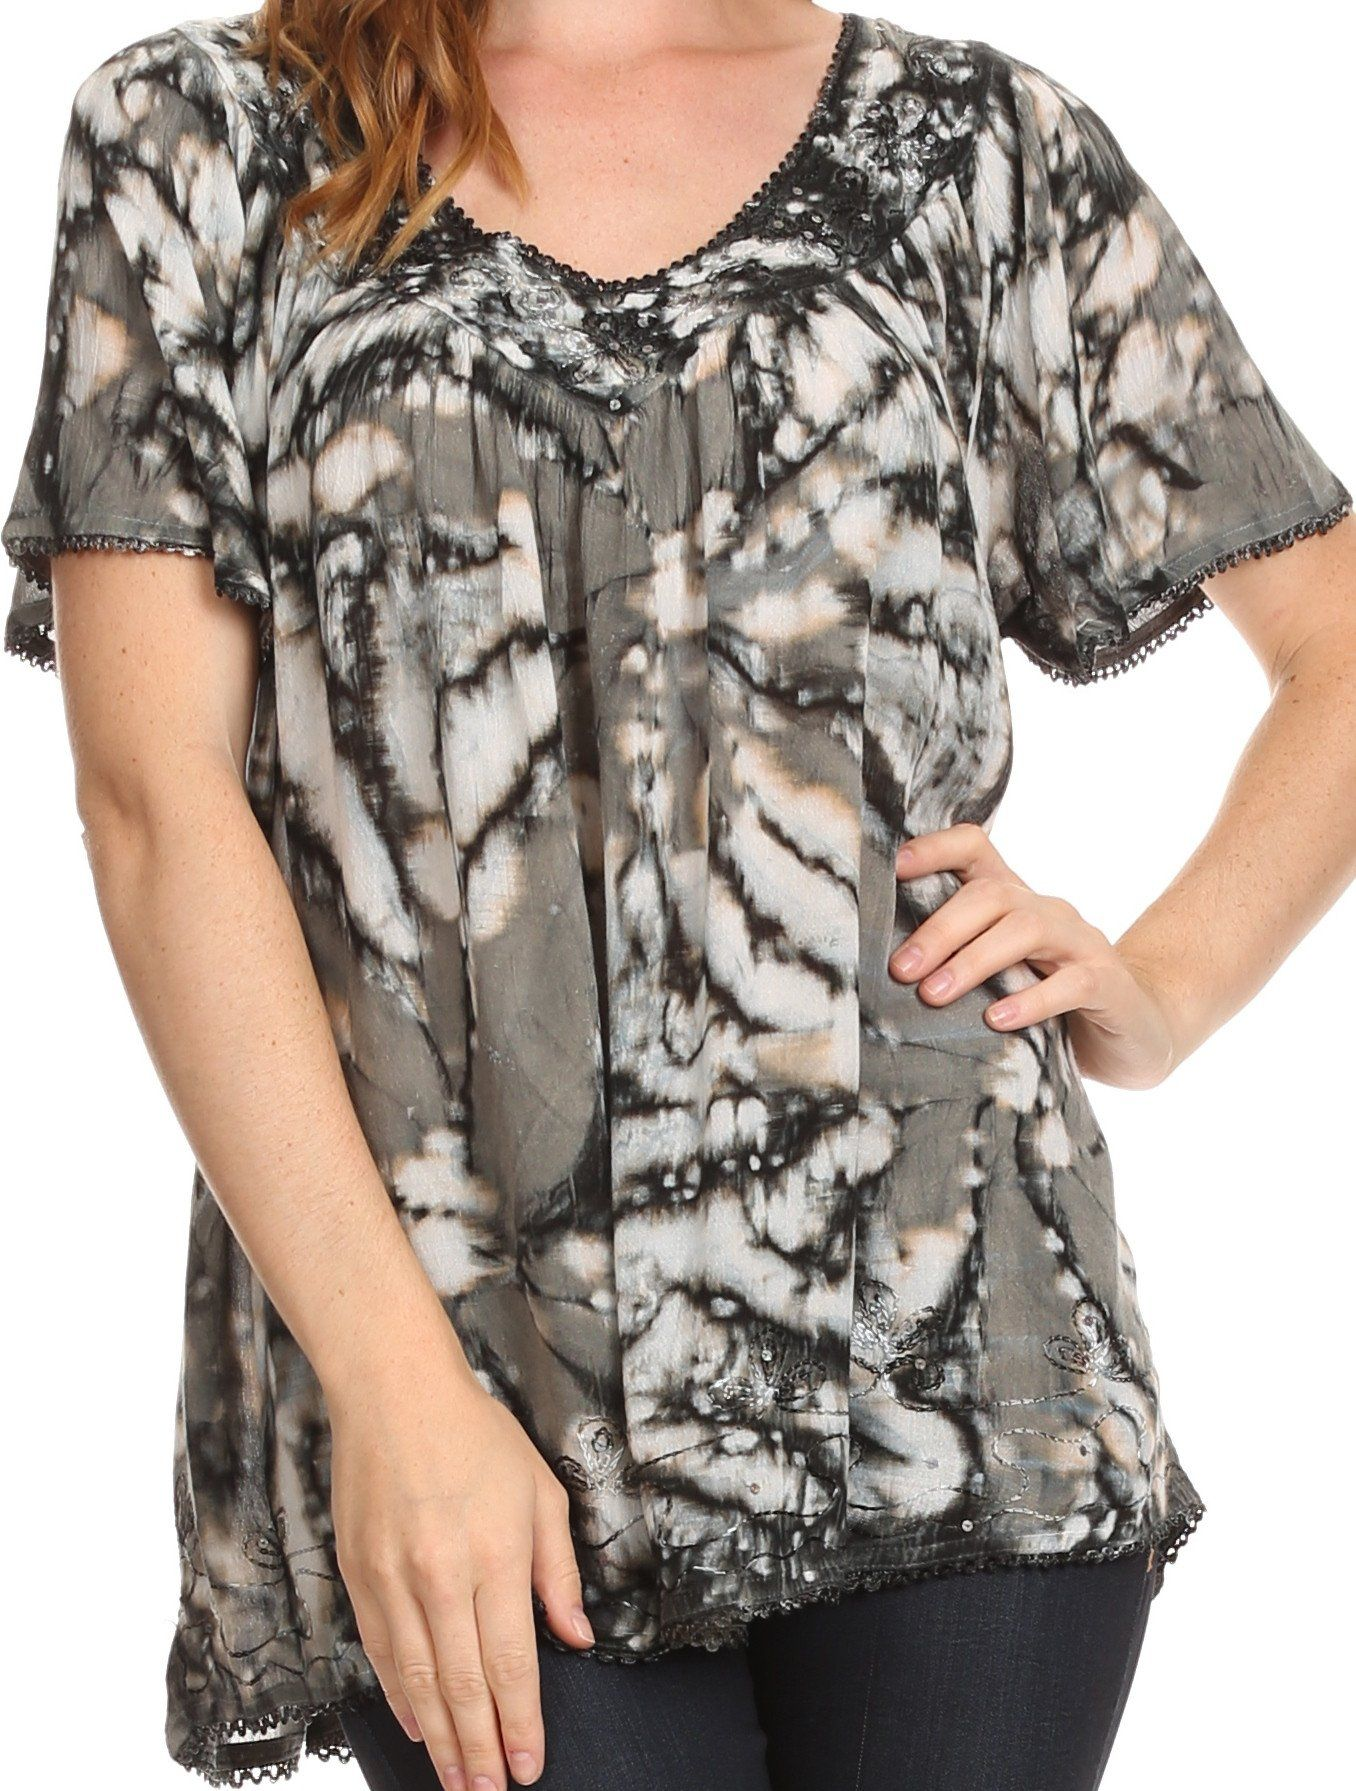 e3a5aa3803 Sakkas Laylah Long Wide Short Sleeve Embroidery Lace Sequin Blouse Shirt  Tunic Top